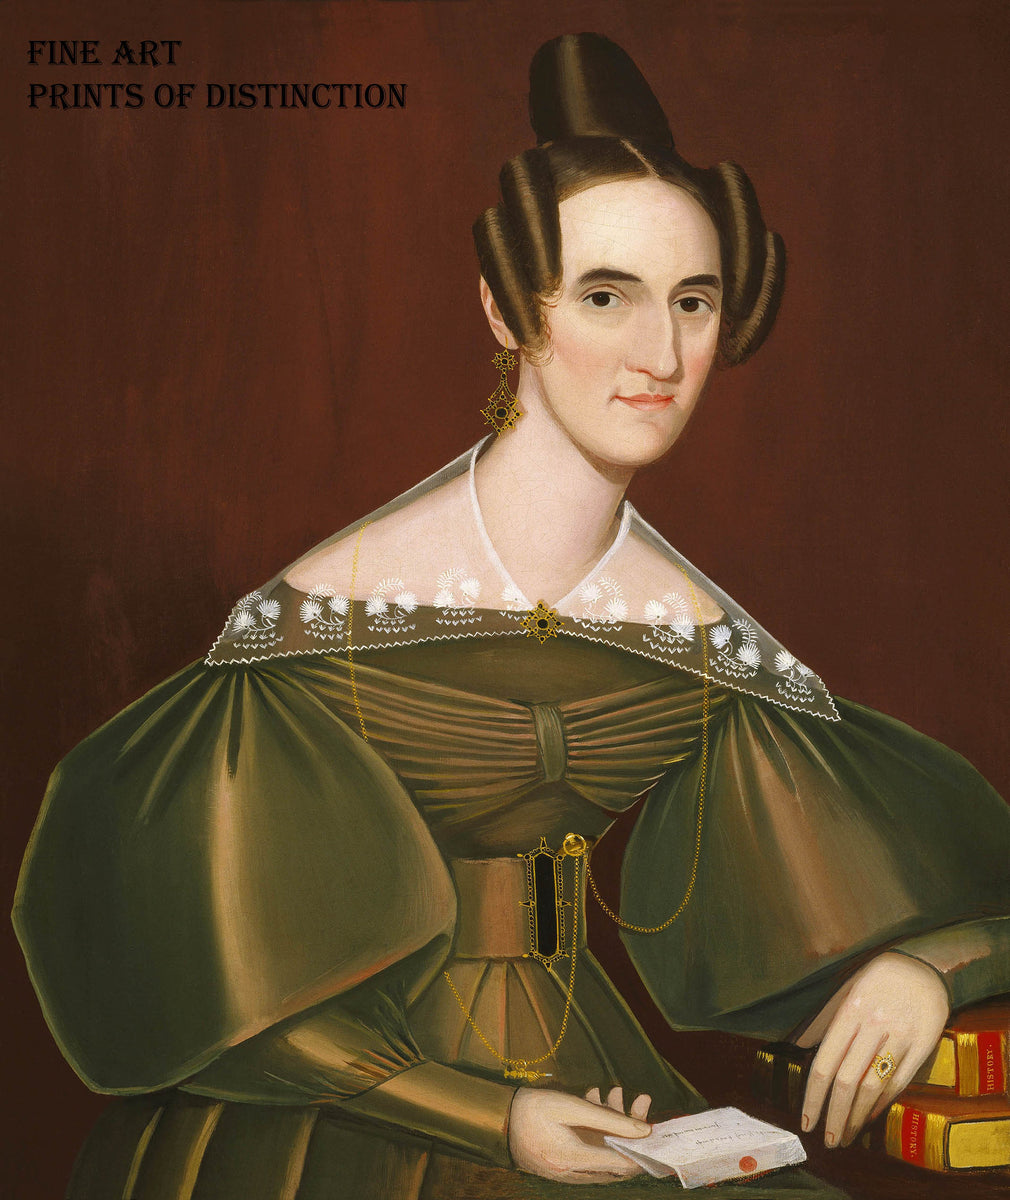 Jeannette Woolley painted by the naive American artist Ammi Phillips around 1838